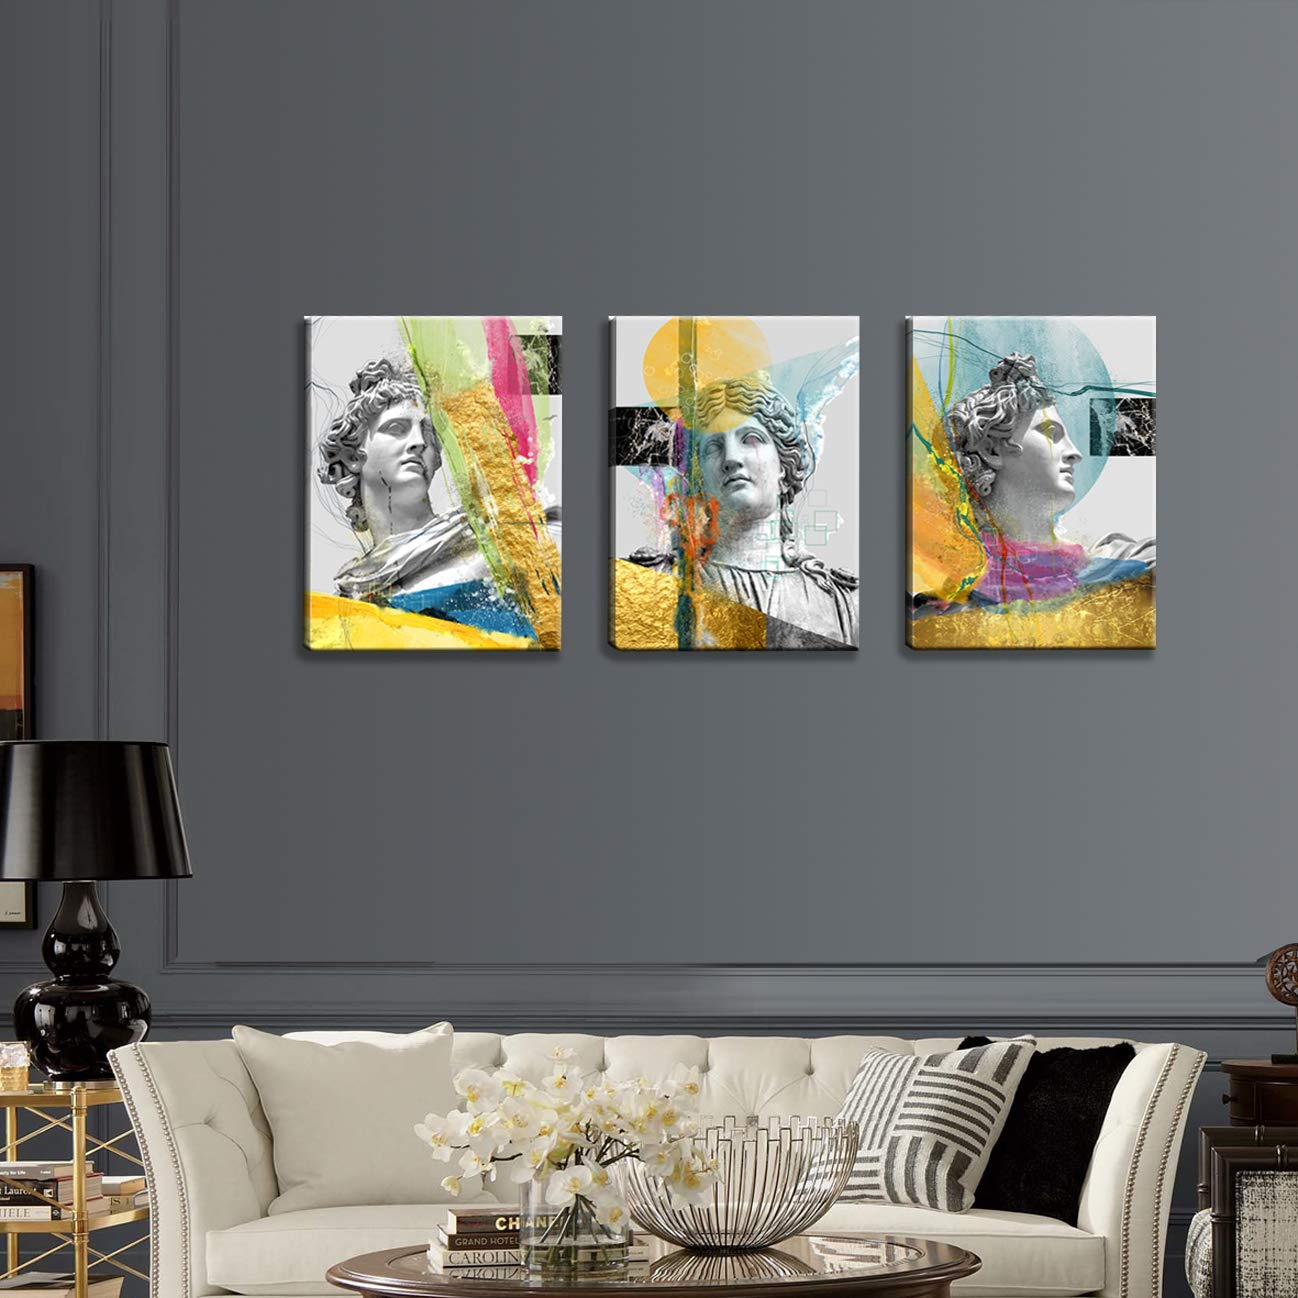 SHARK CANVAS PRINT PICTURE ABSTRACT WALL ART HOME DECOR LARGE 36 X 24 INCH